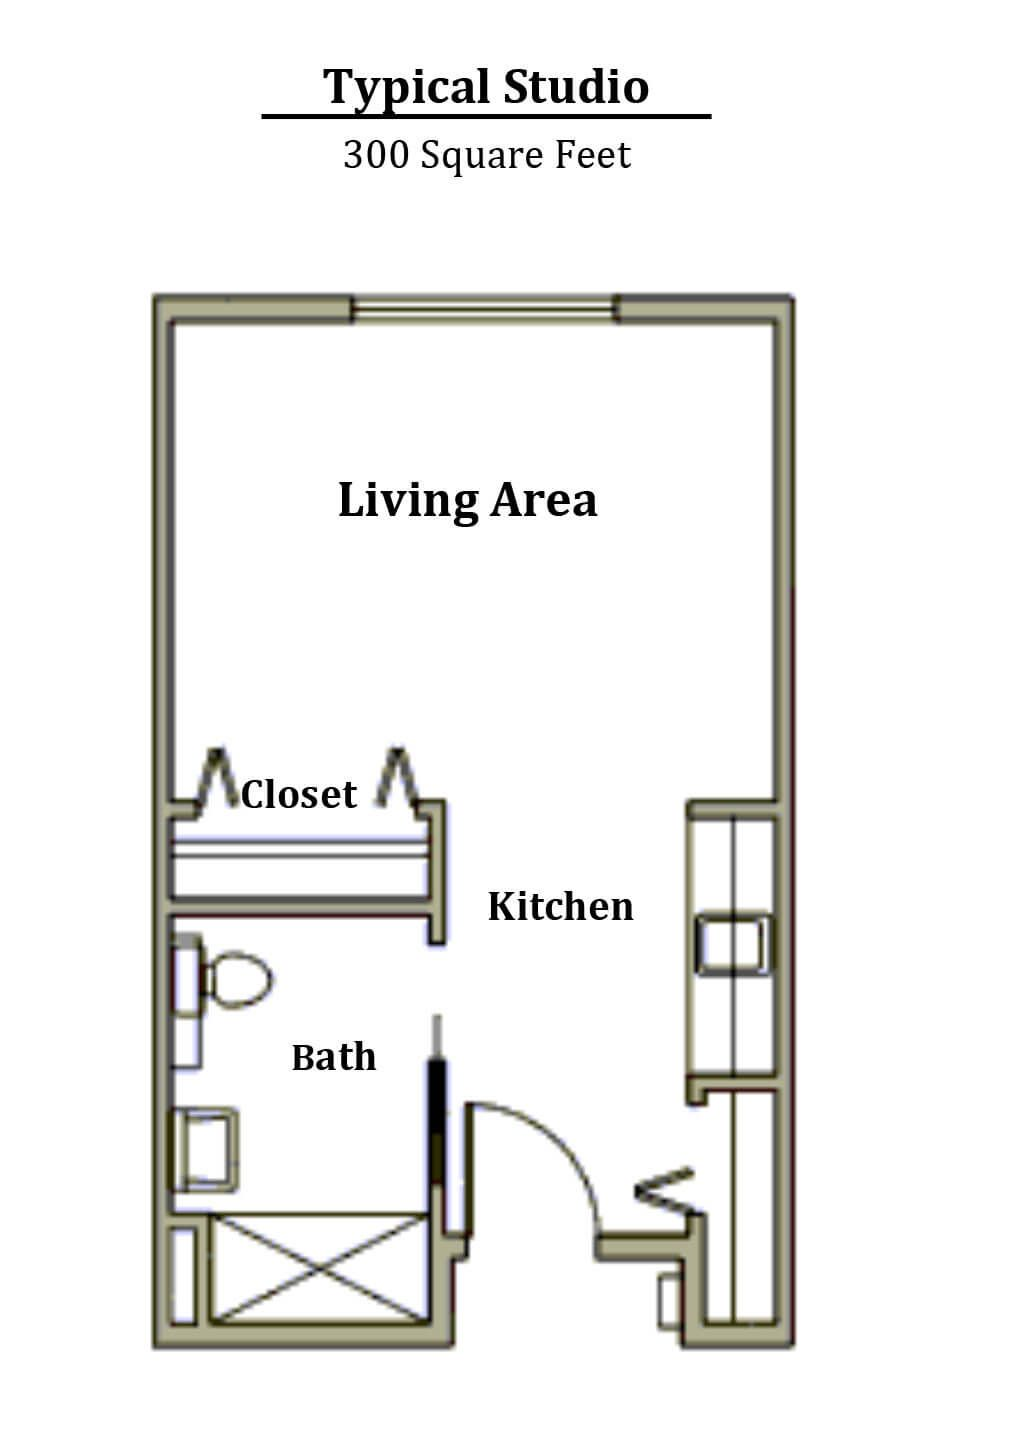 Image Result For Studio Floor Plans 300 Sq Ft Studio Floor Plans Floor Plans How To Plan